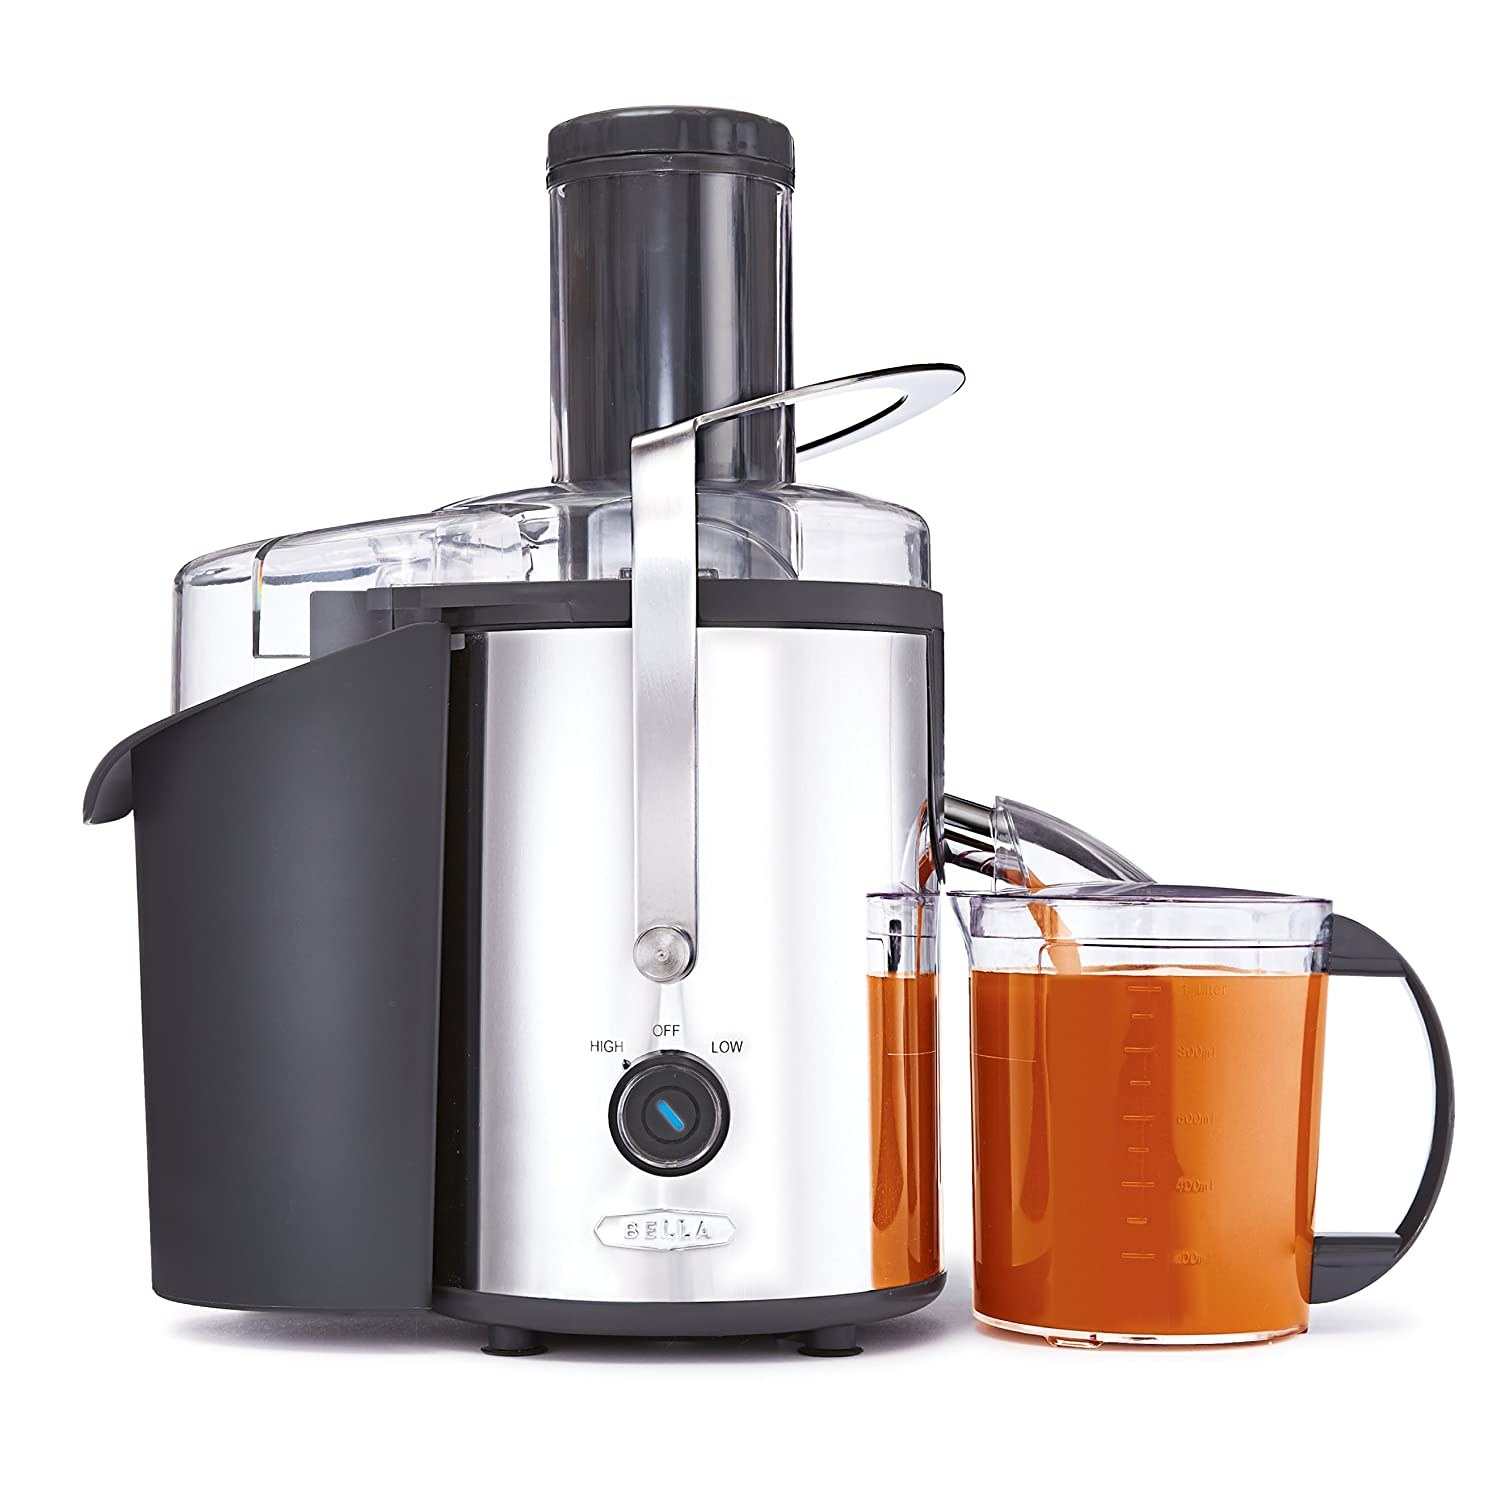 BELLA 13694 High Power Juice Extractor, Stainless Steel